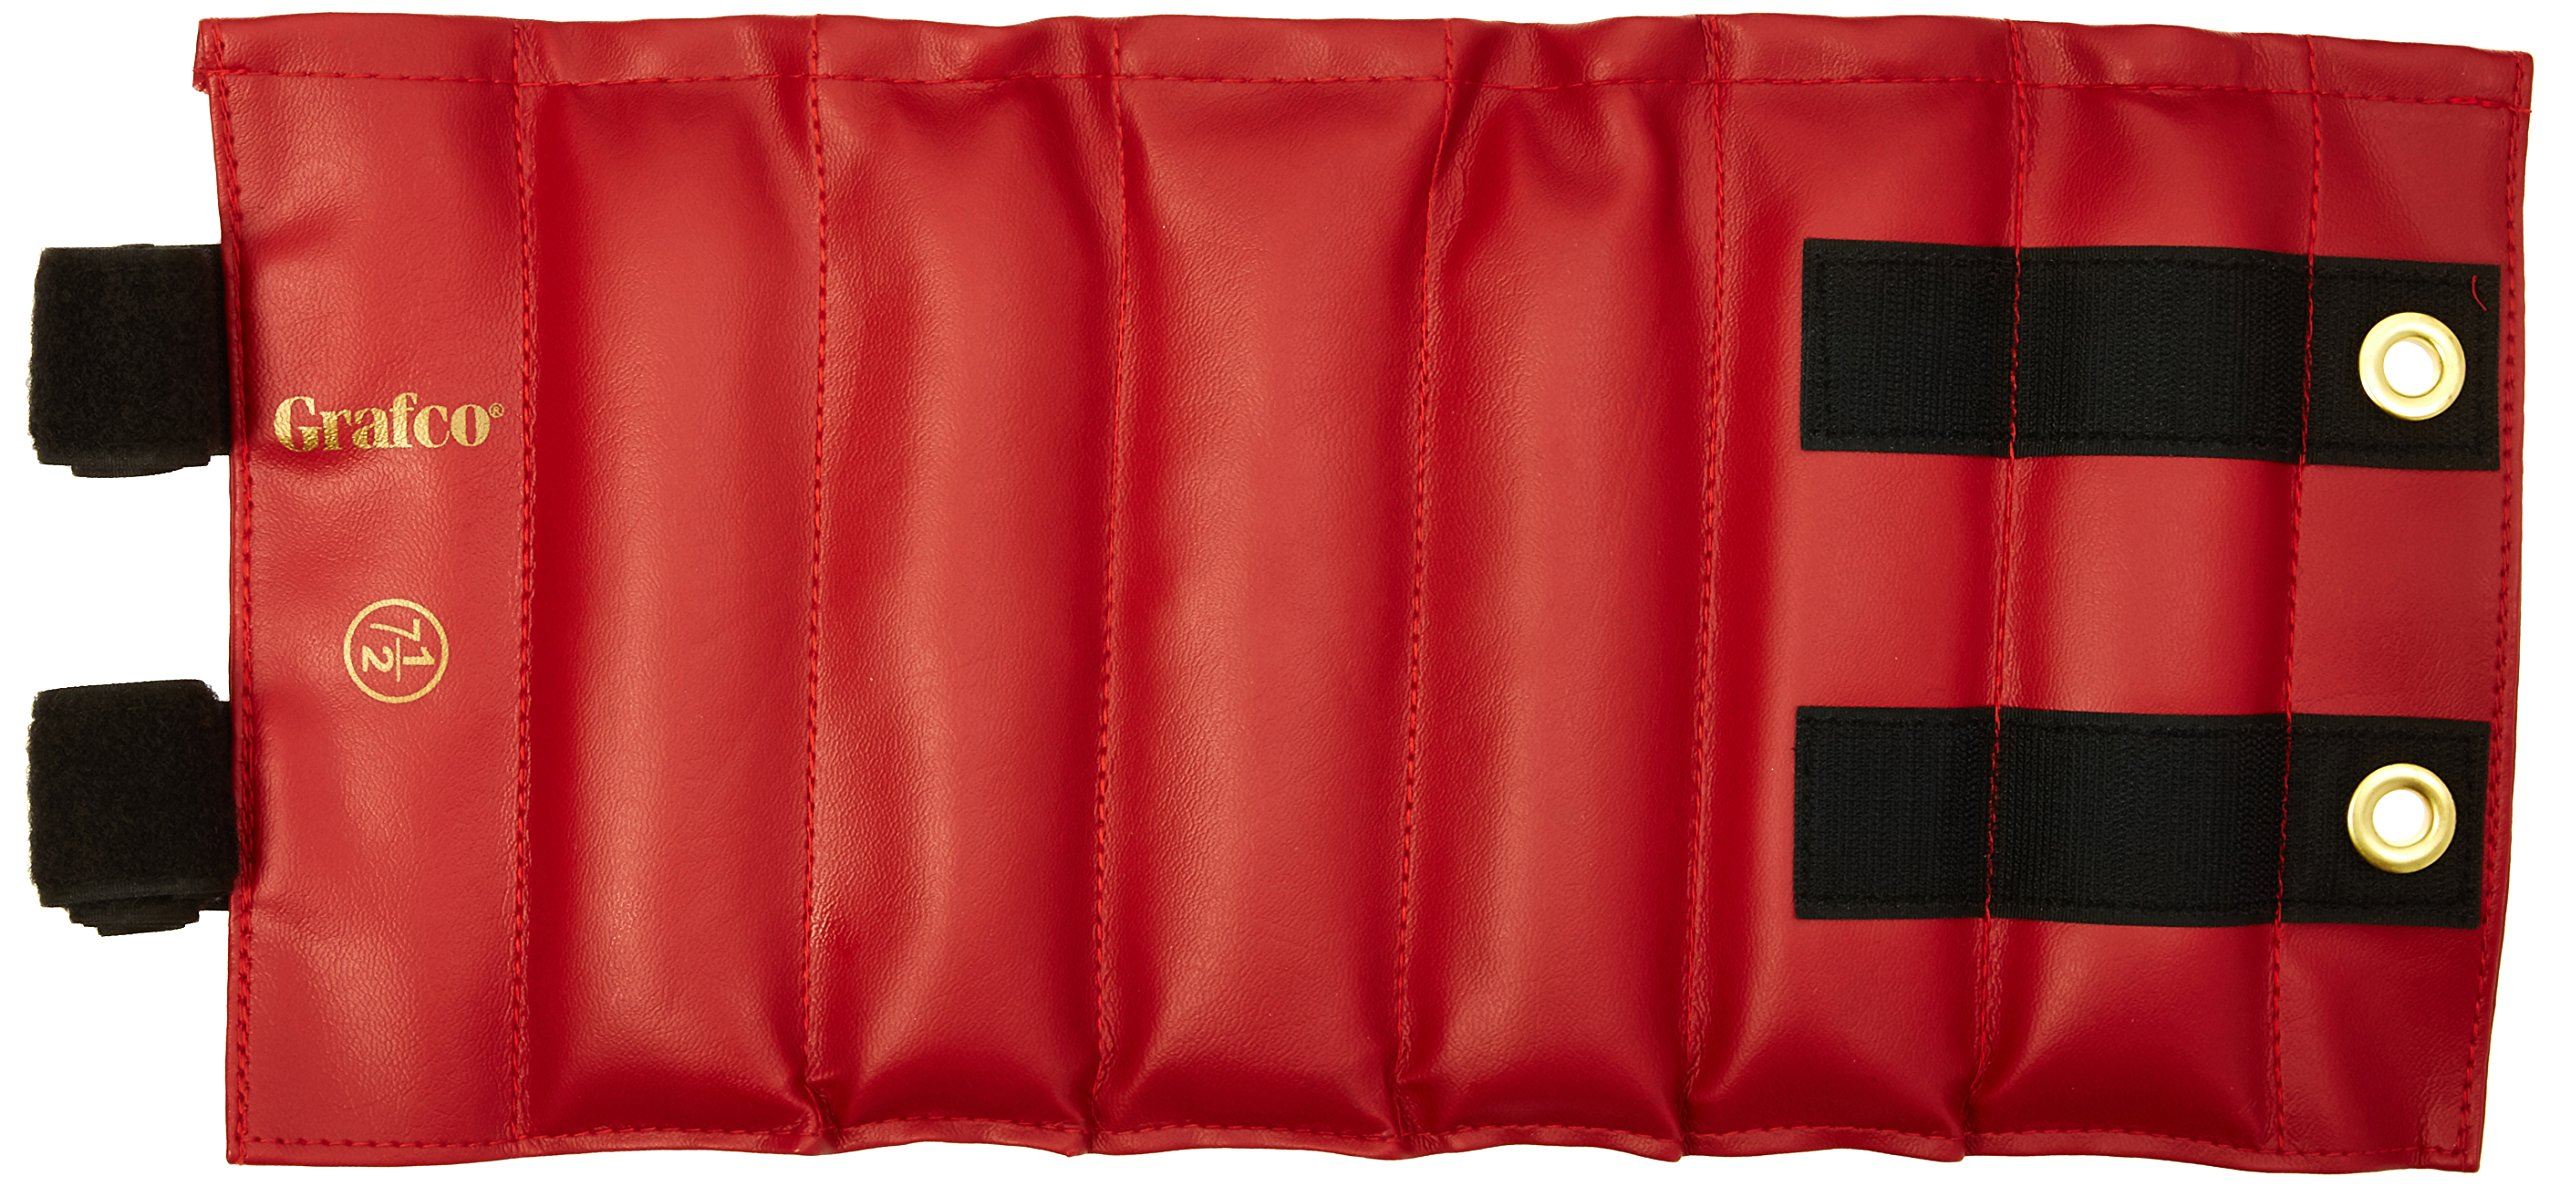 Grafco 1899 Exercise Weight, 7-1/2 lb. (3.40 Kg), Red